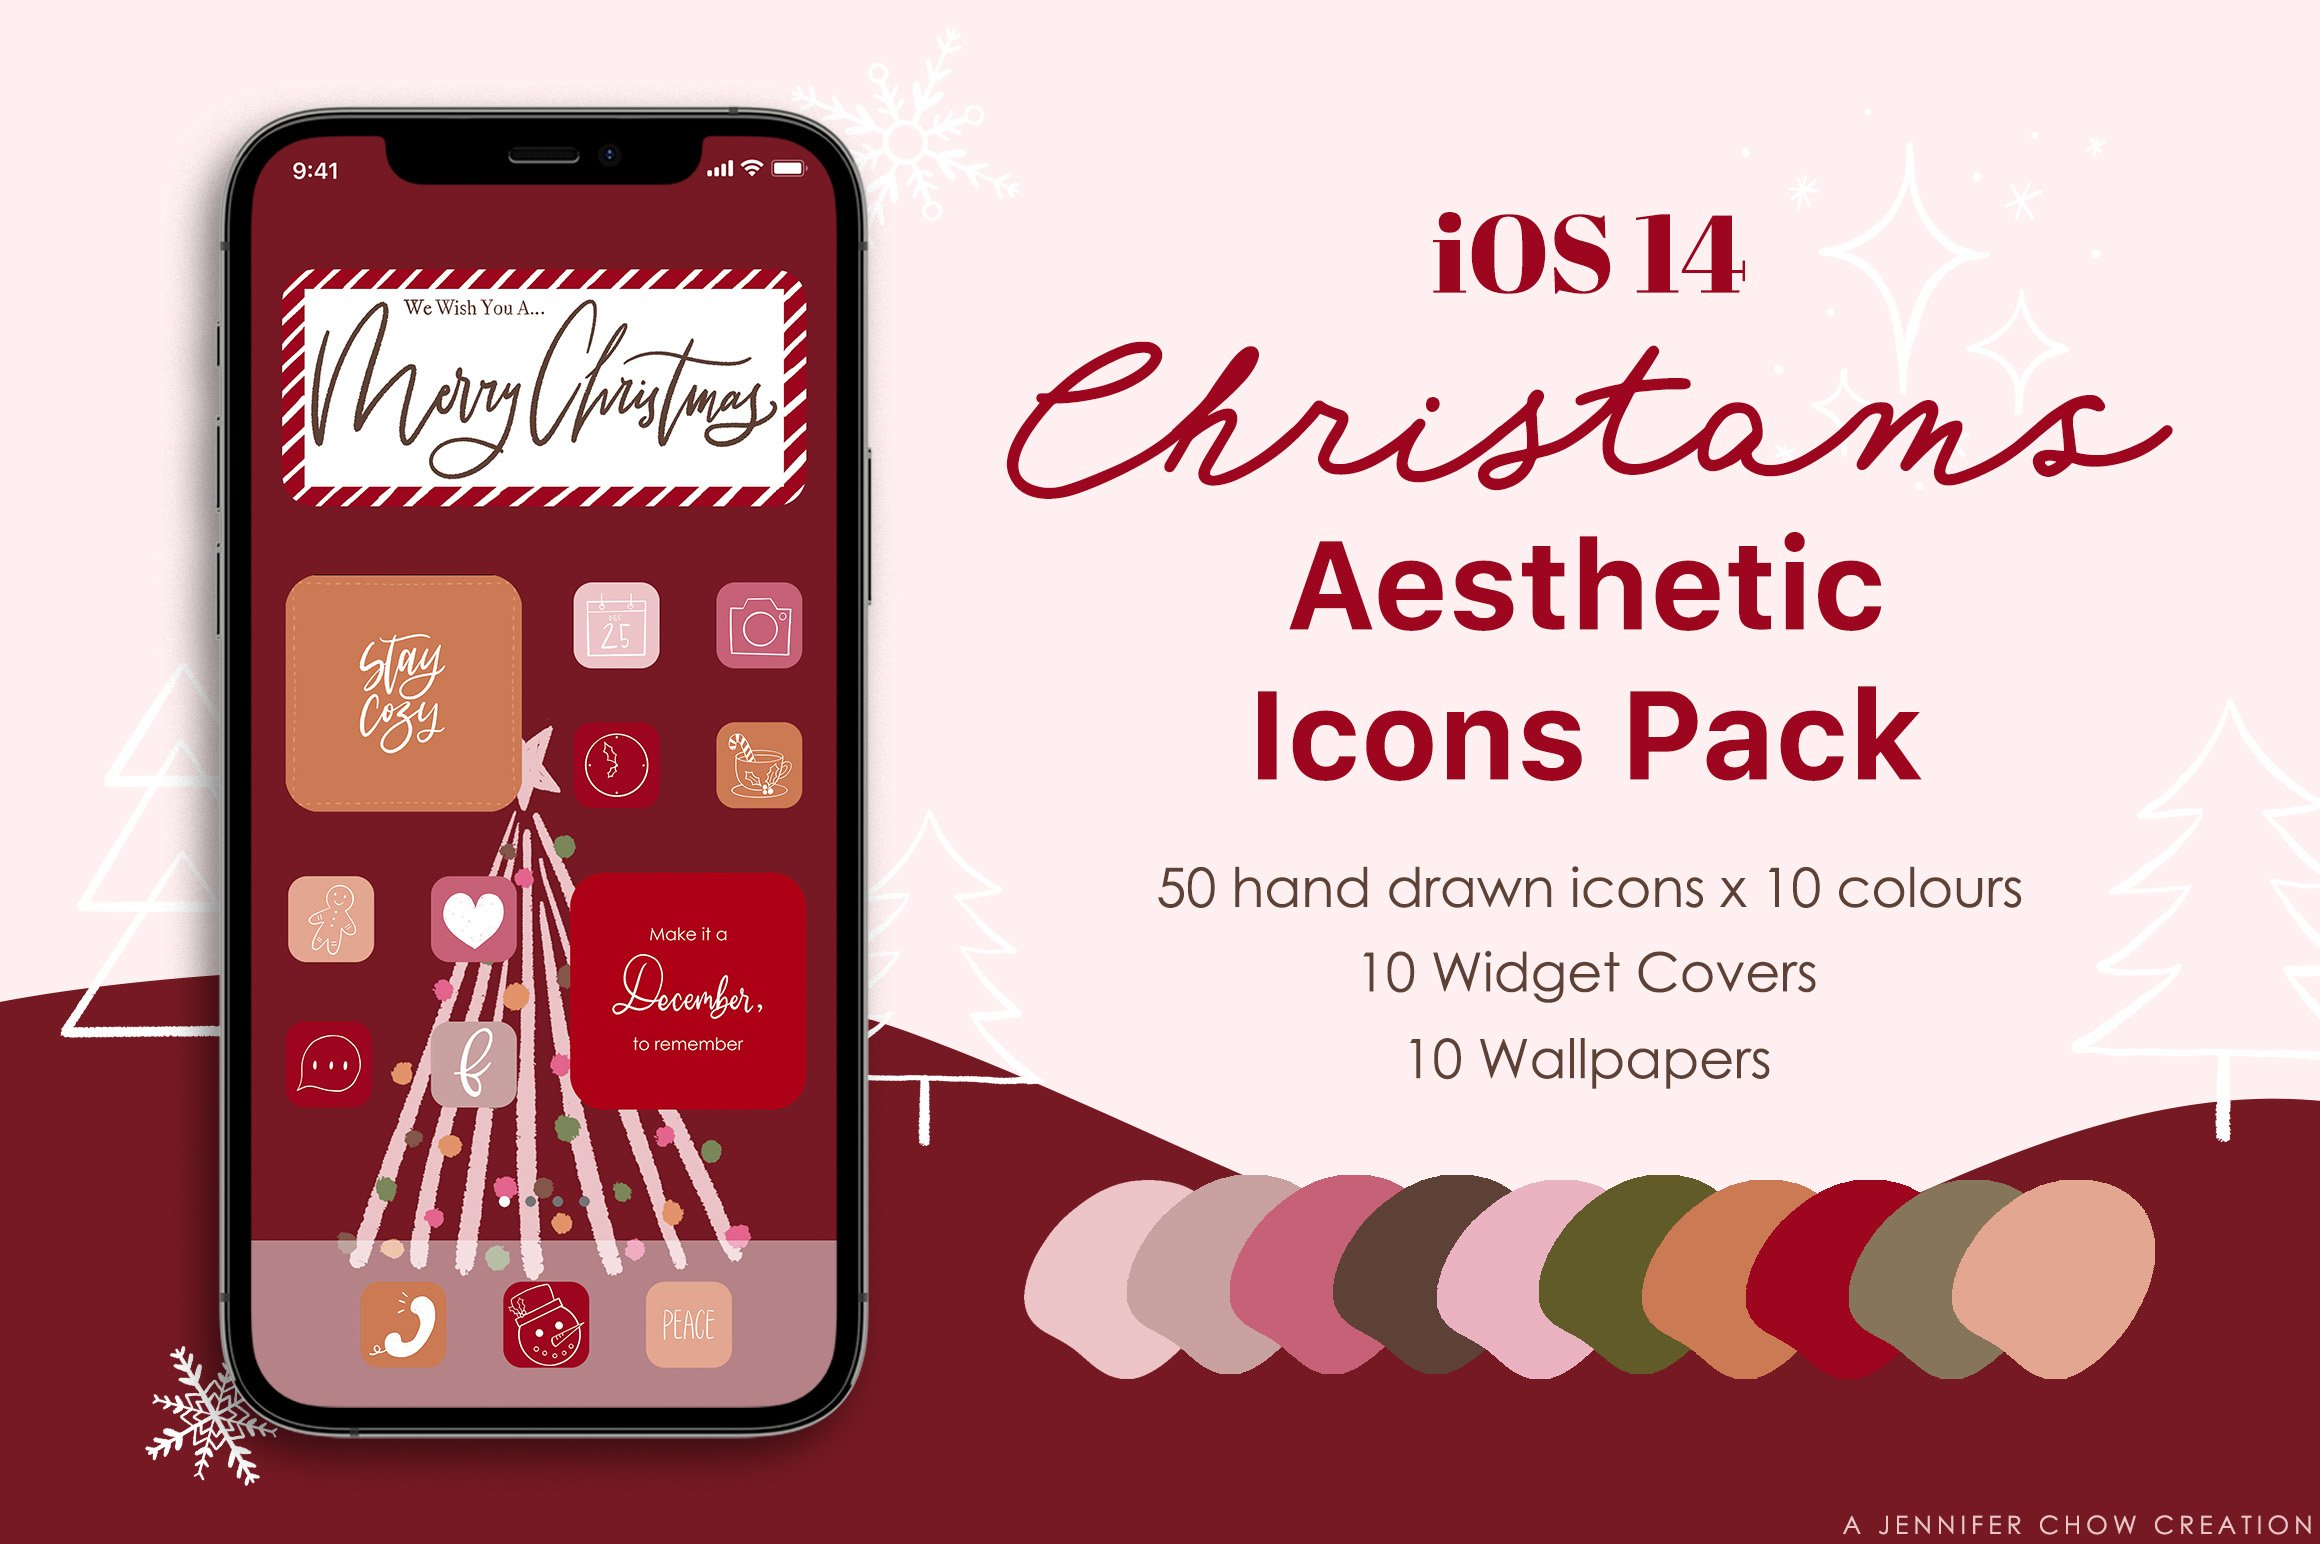 ufgm u2nxkombm https designbundles net jennifer chow 1055715 ios 14 christmas phone aesthetic hand drawn app ic